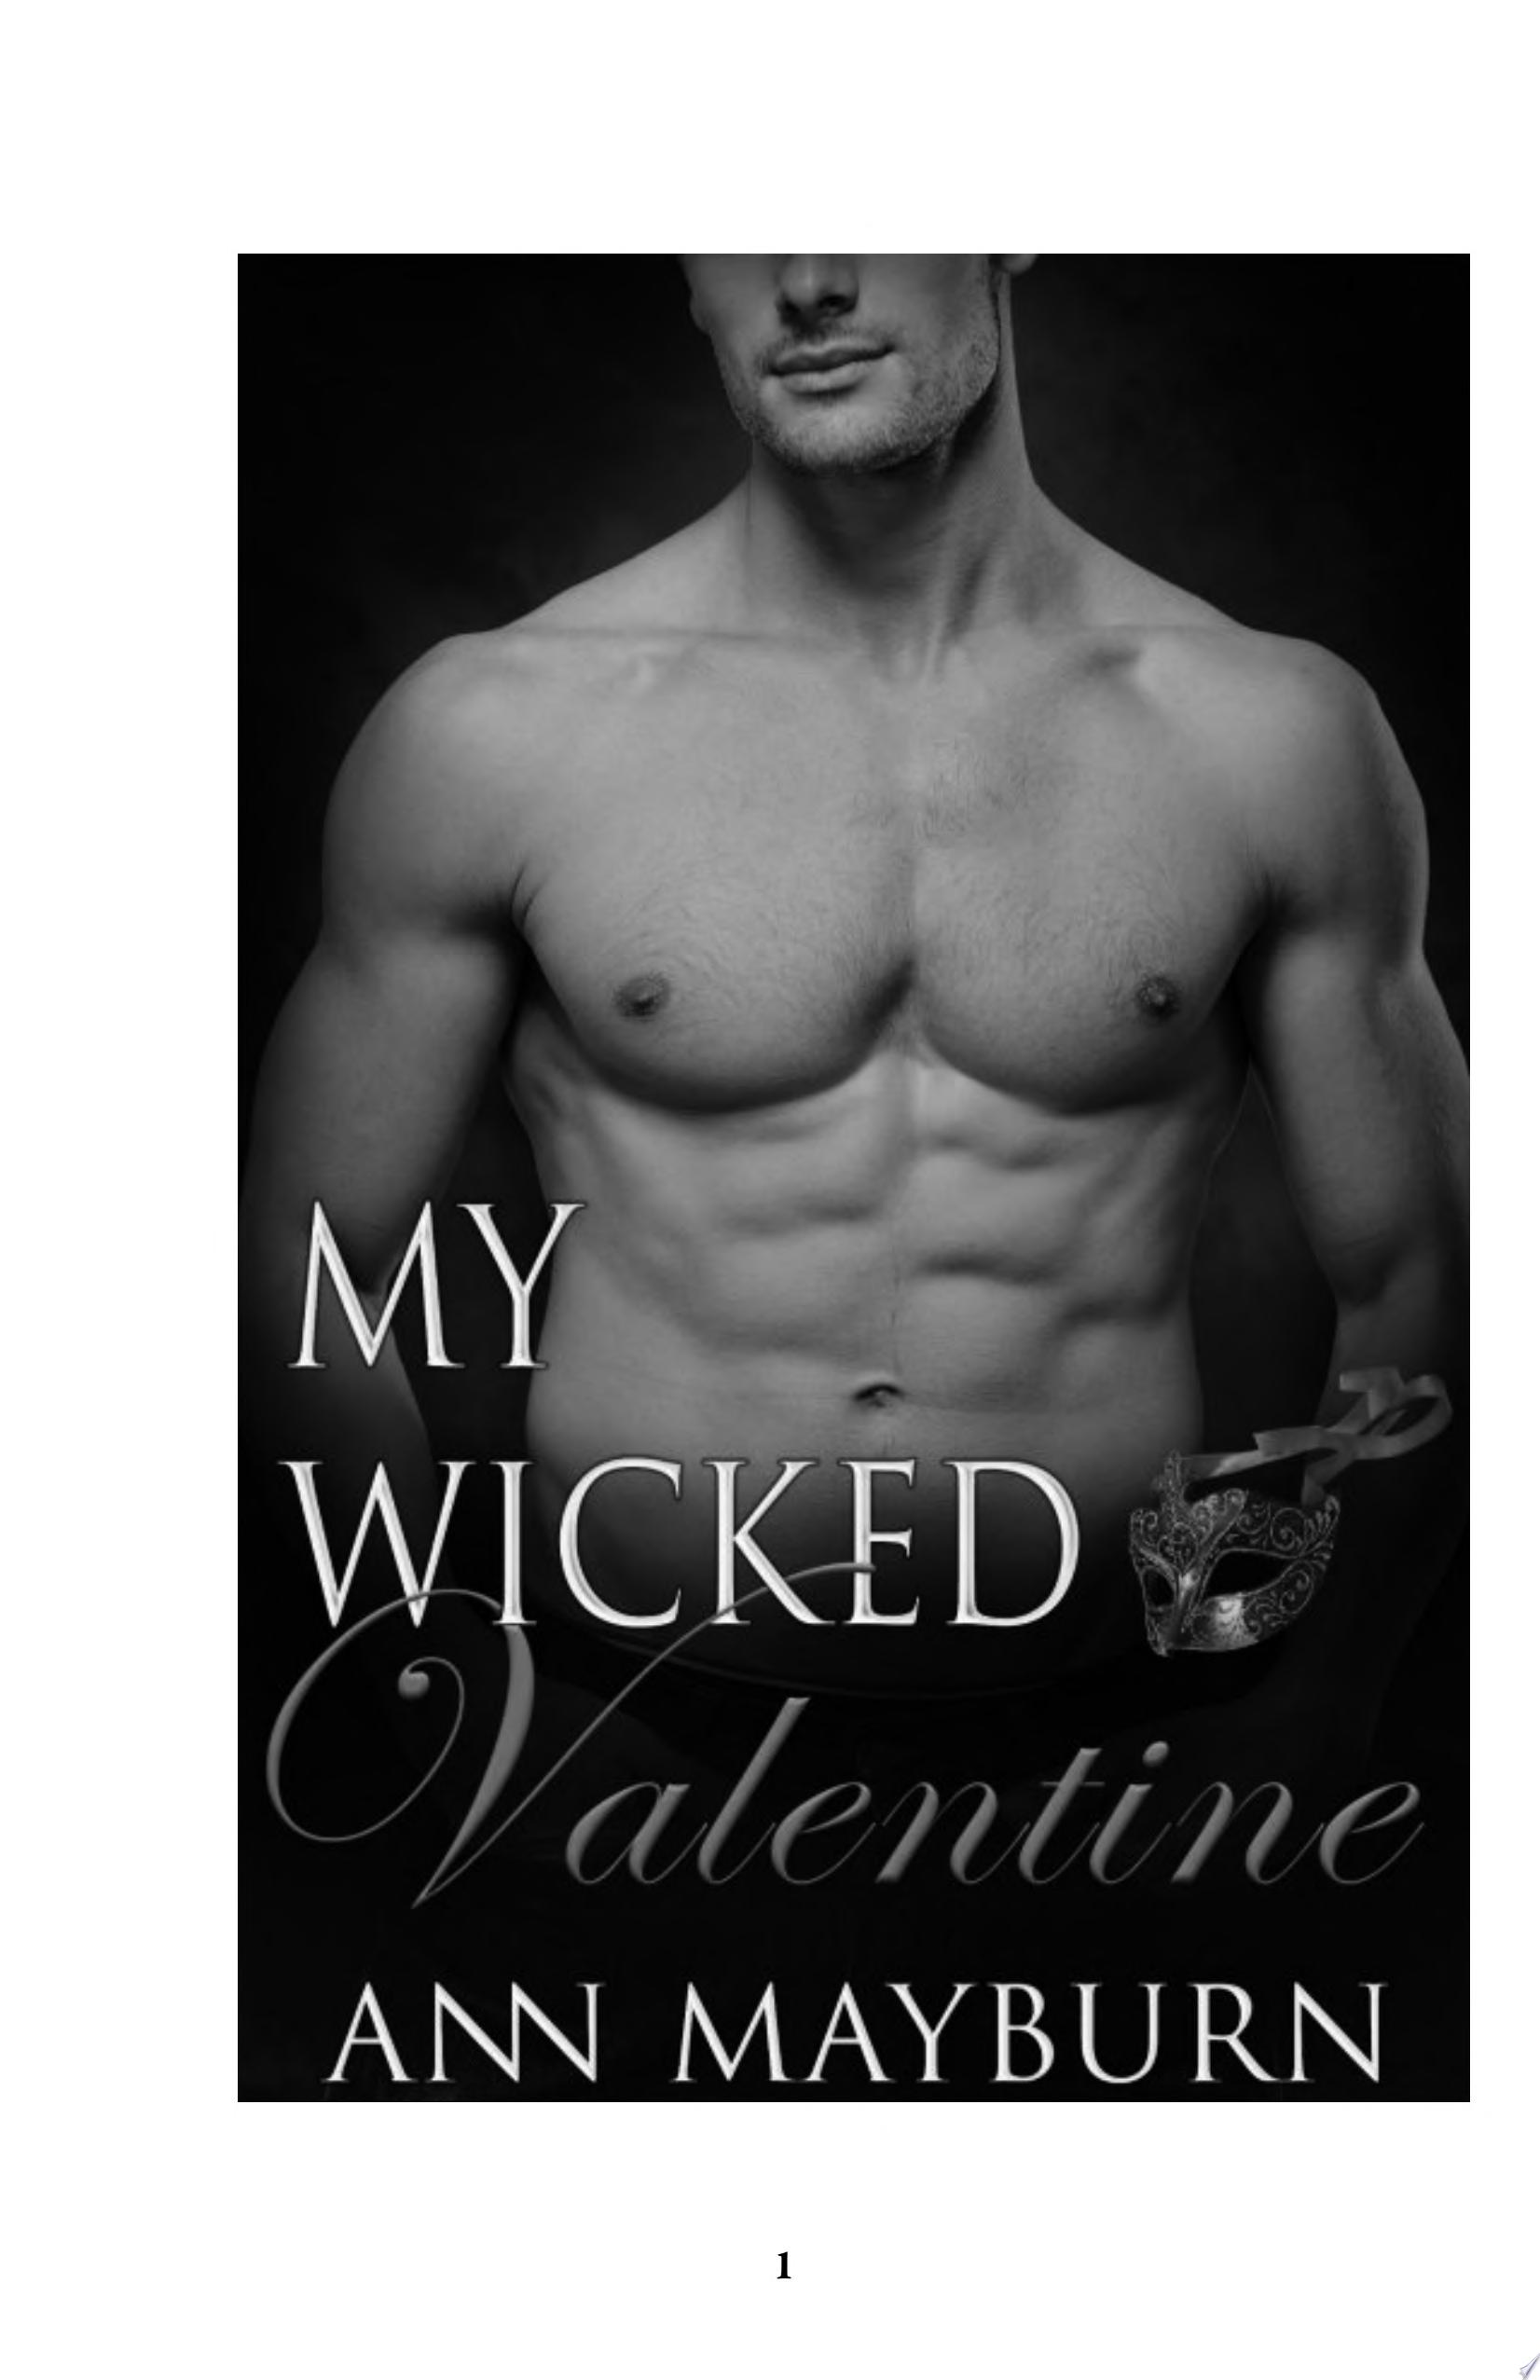 My Wicked Valentine